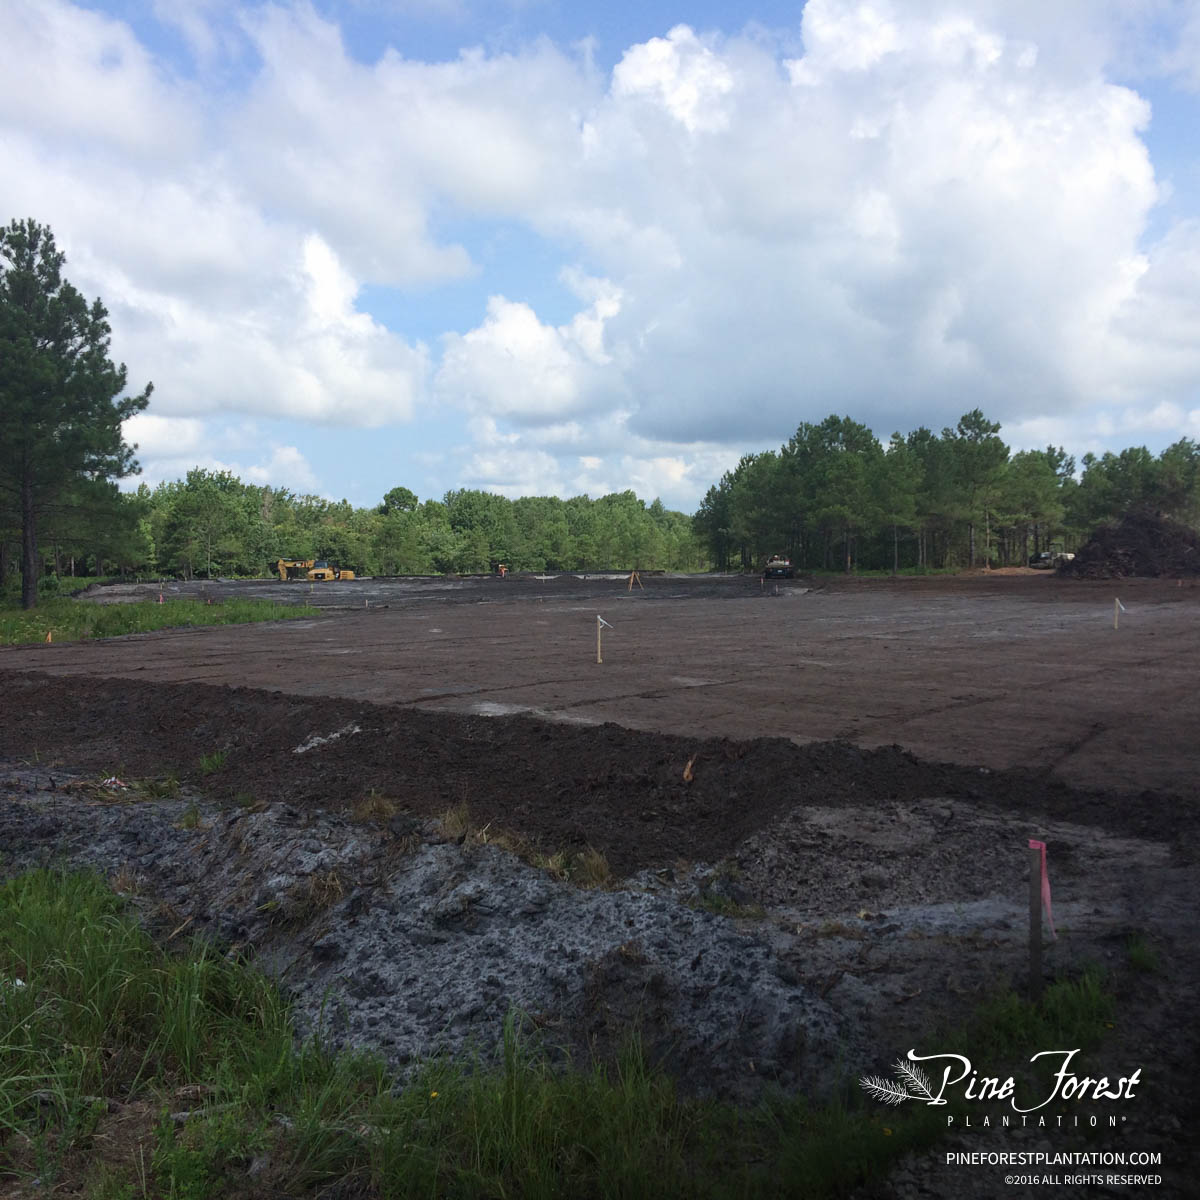 Construction progress at Pine Forest for the future Novant Health facility.